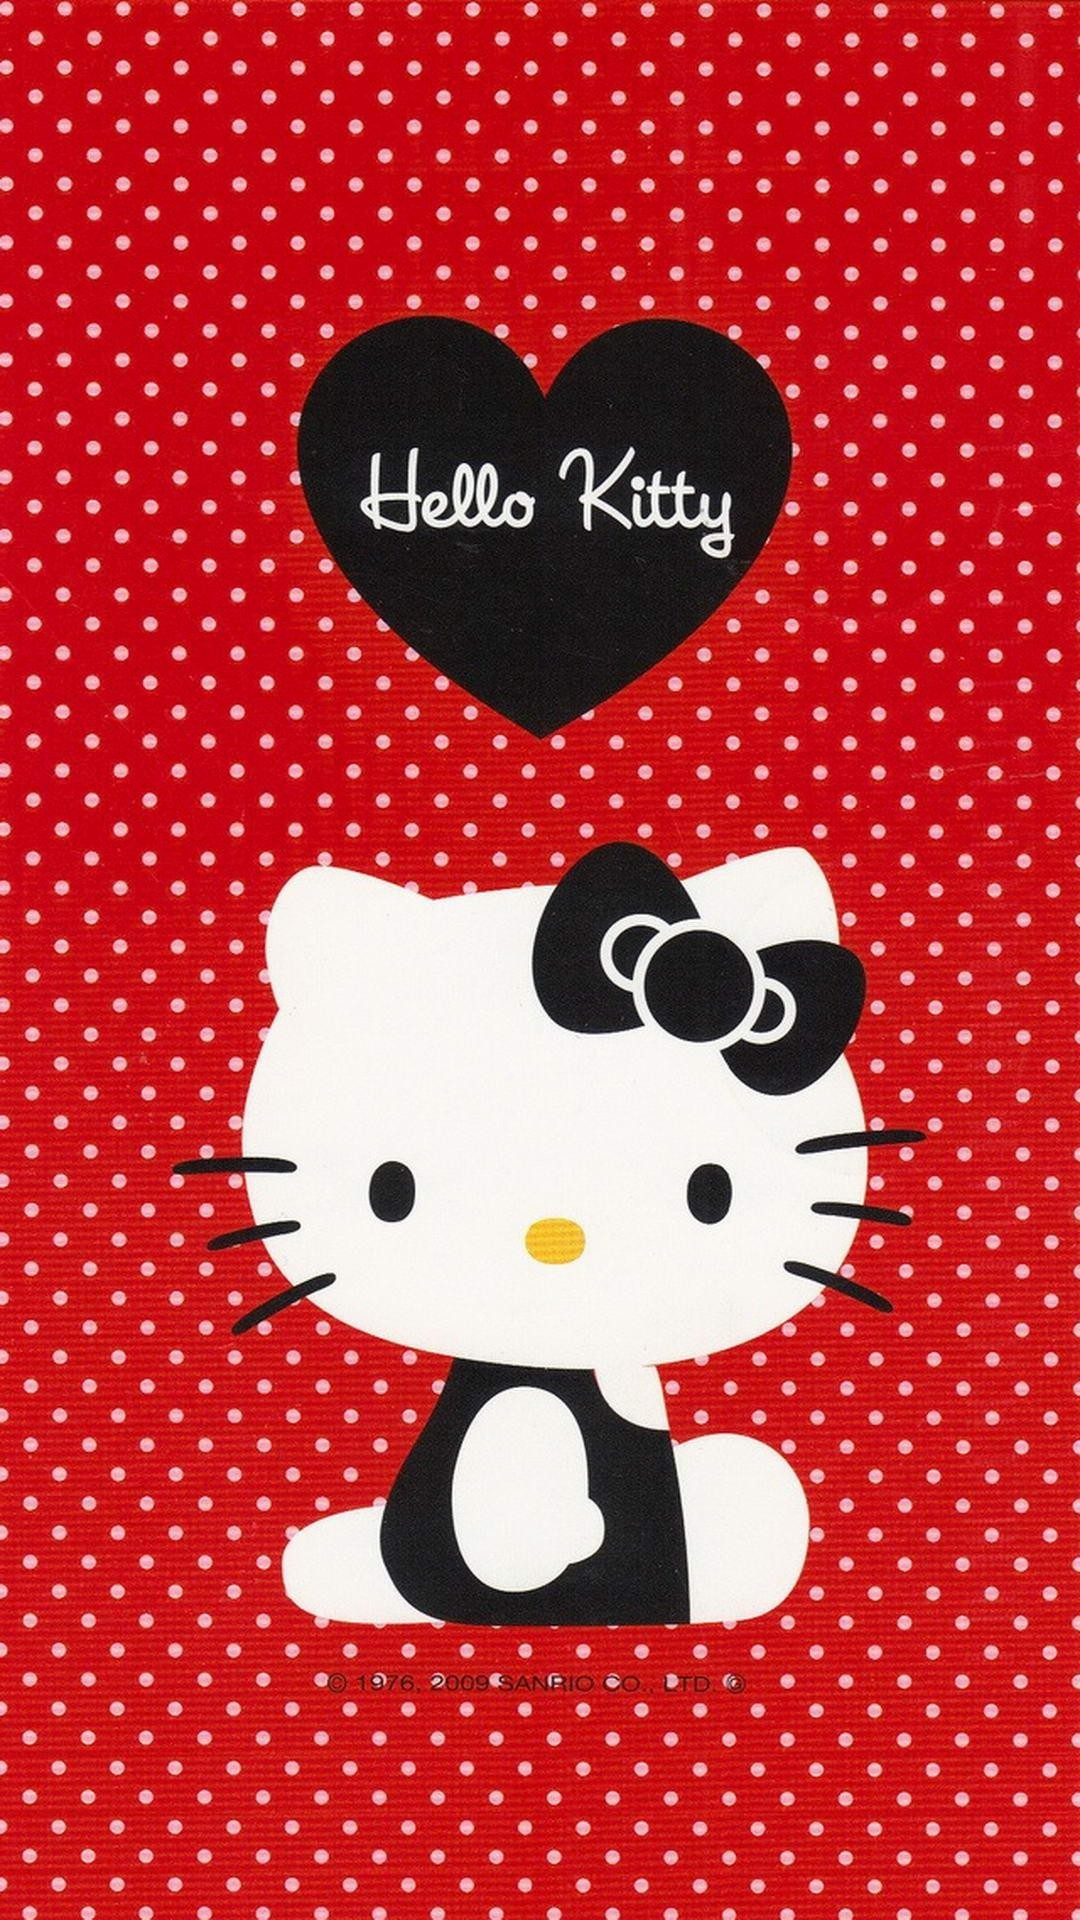 1080x1920 10. hello-kitty-iphone-wallpaper2-338x600